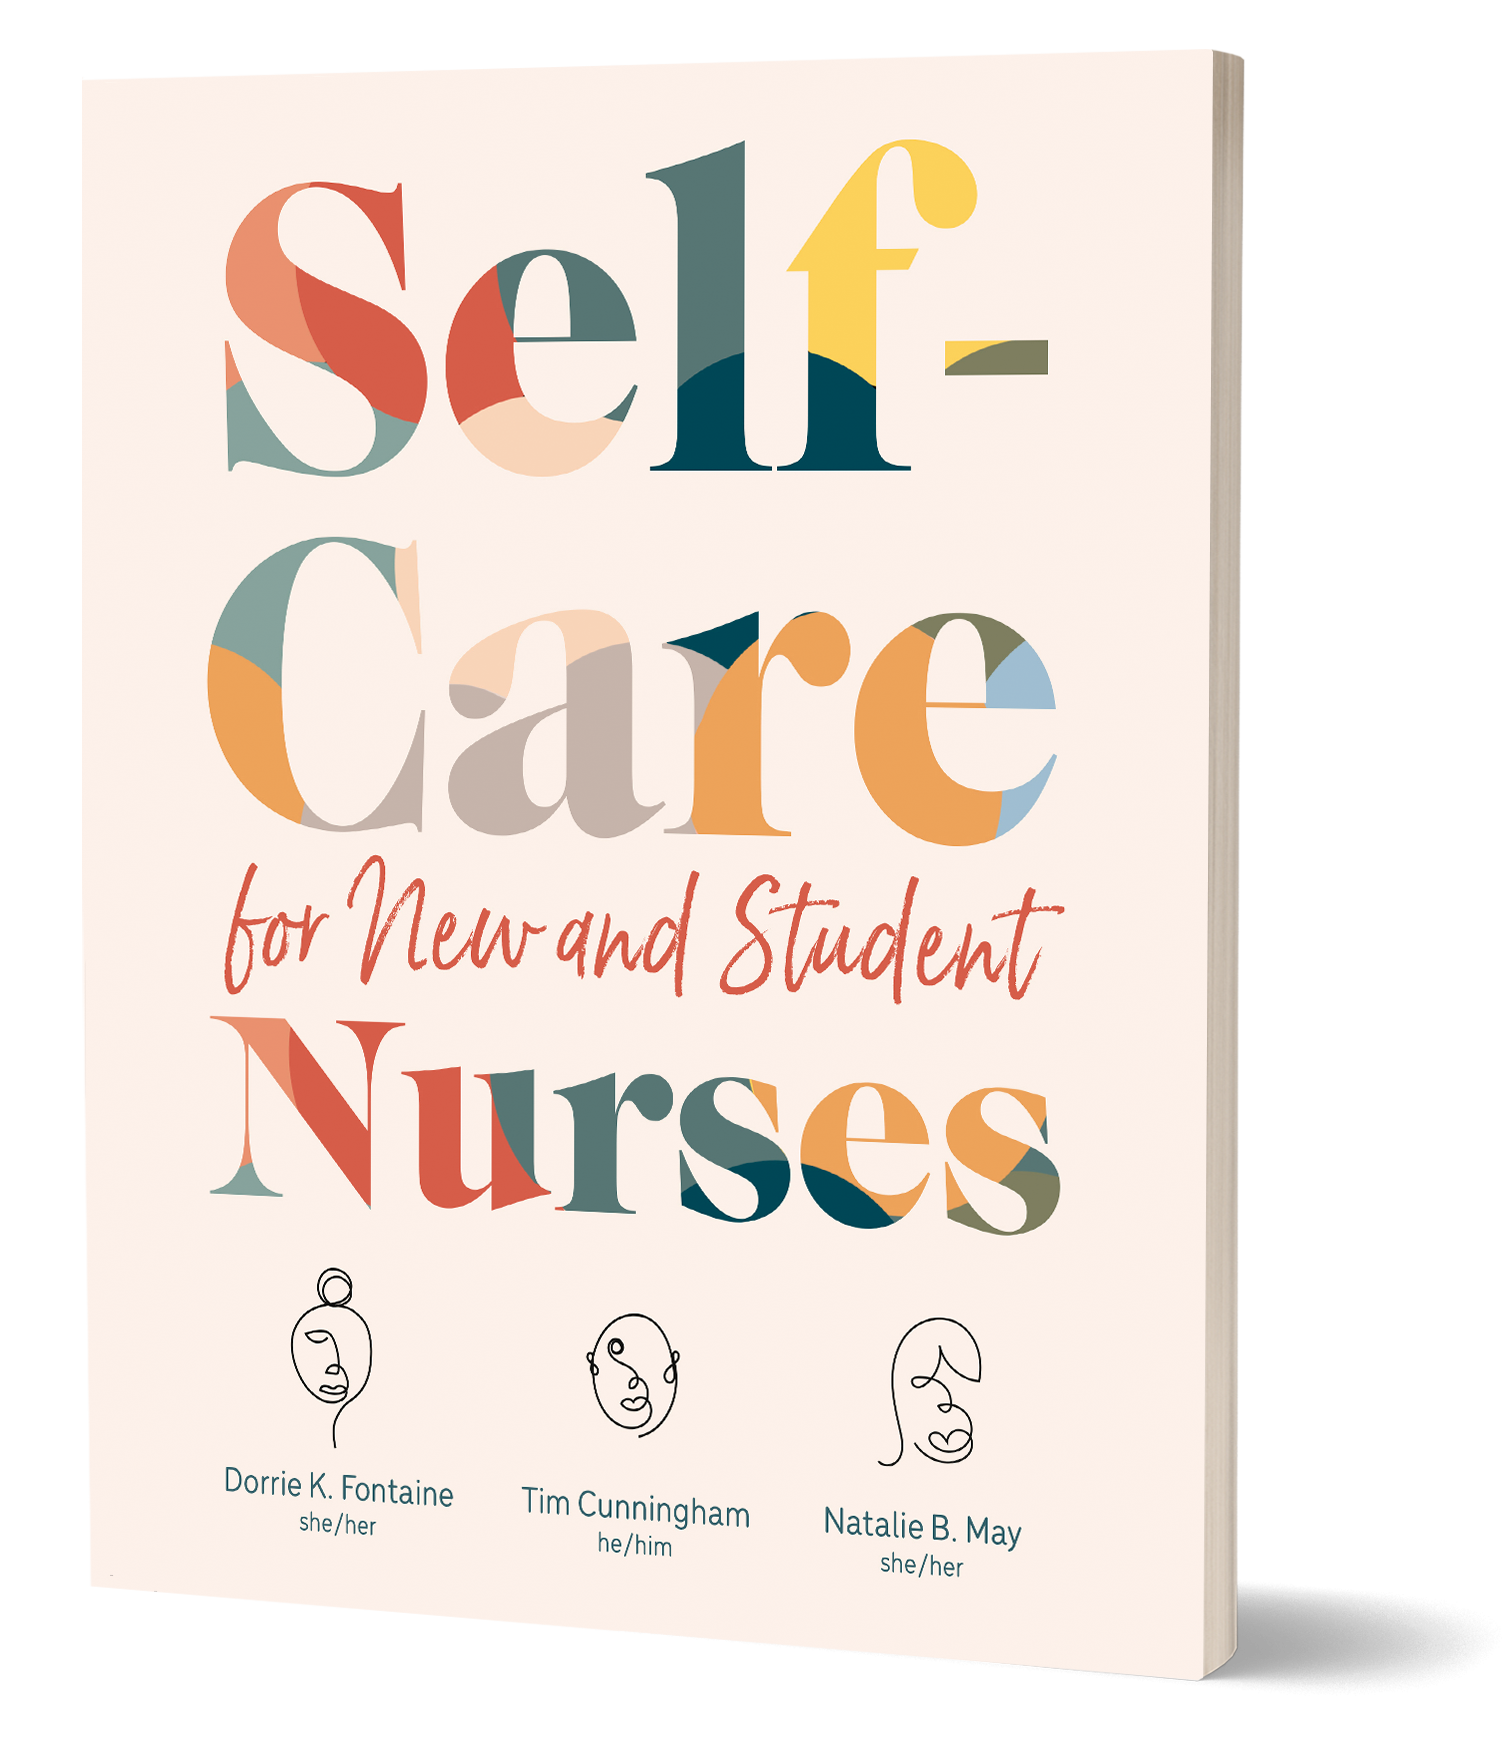 Self-Care for New and Student Nurses